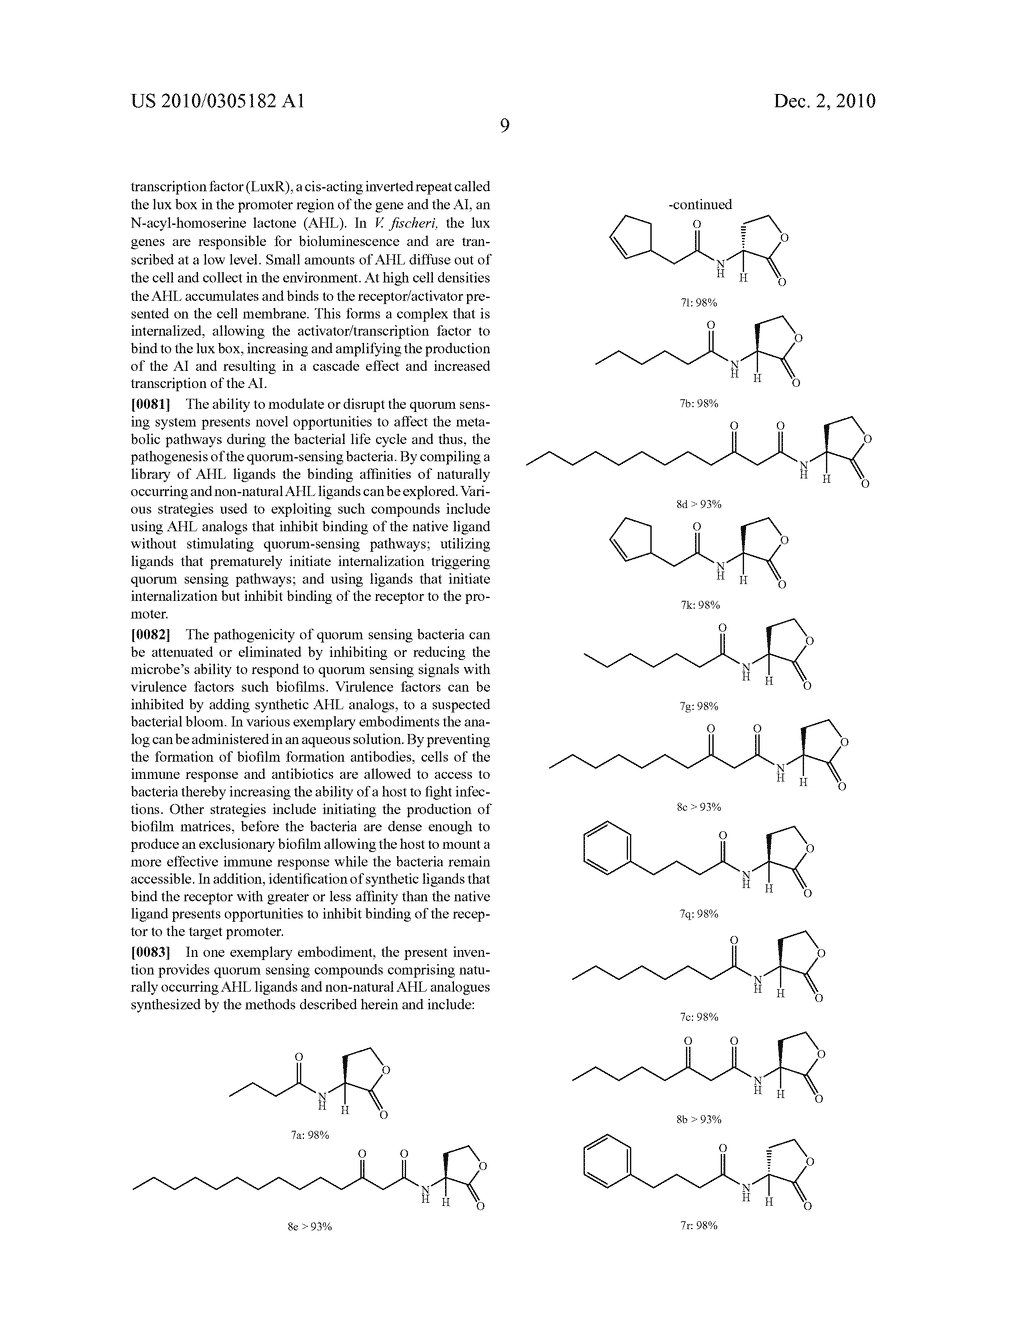 COMPOUNDS AND METHODS FOR MODULATING COMMUNICATION AND VIRULENCE IN QUORUM SENSING BACTERIA - diagram, schematic, and image 86